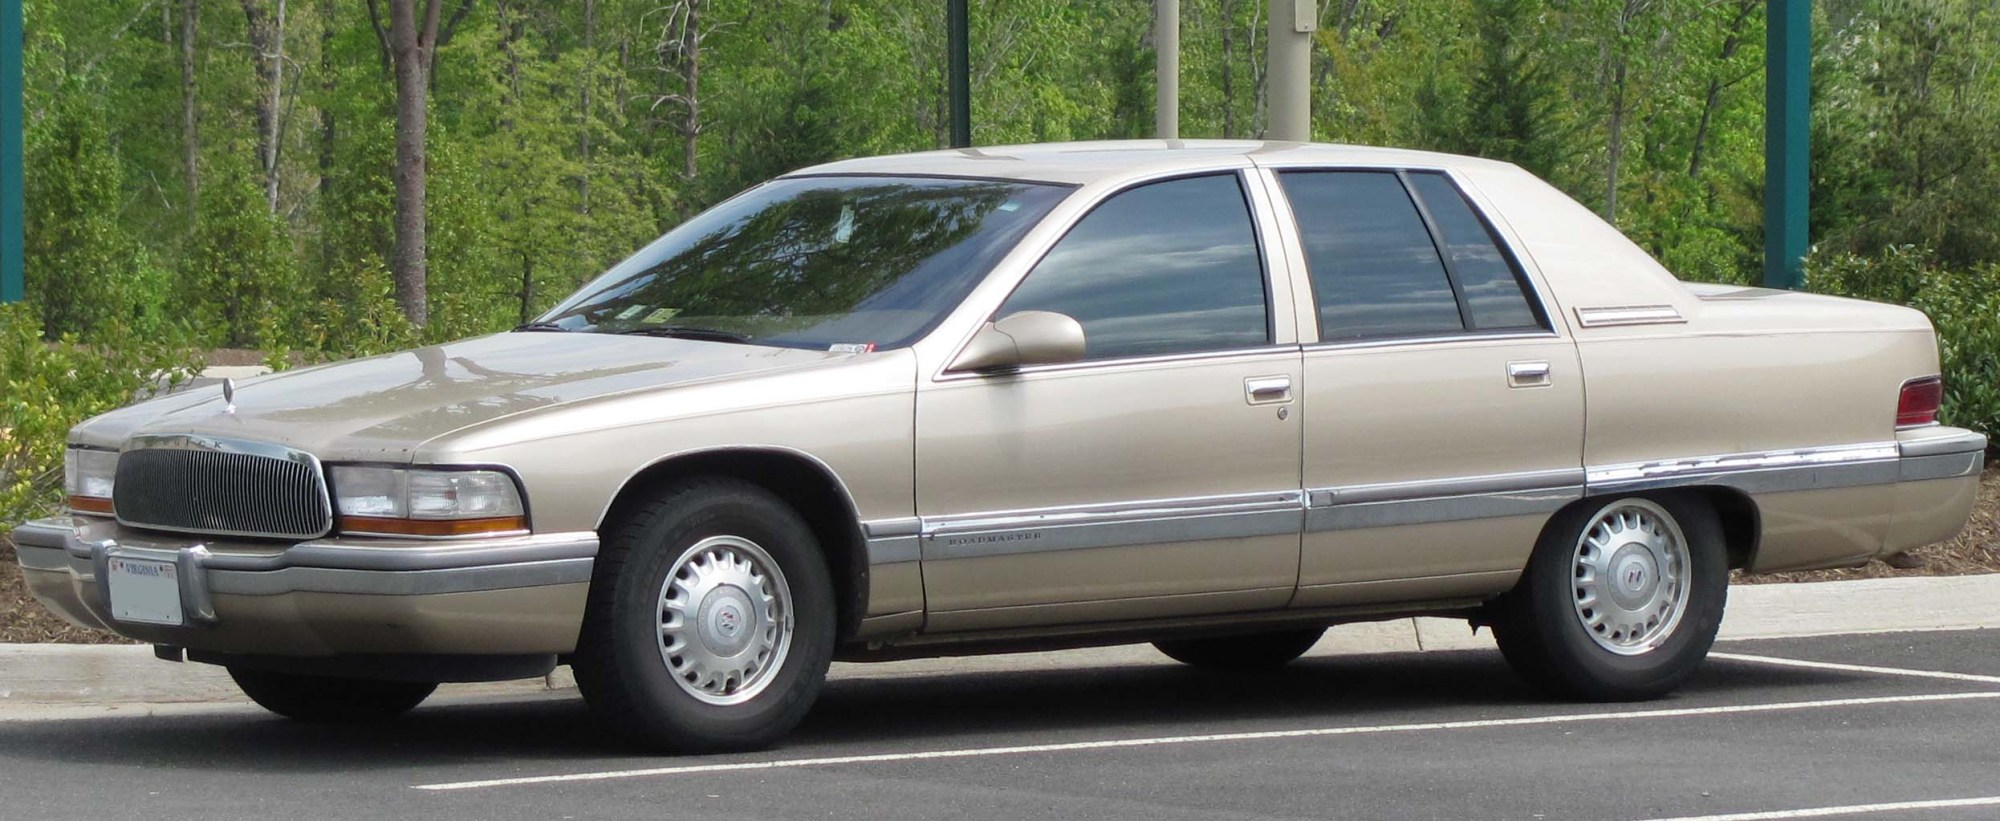 hight resolution of 1995 caprice wagon air ride